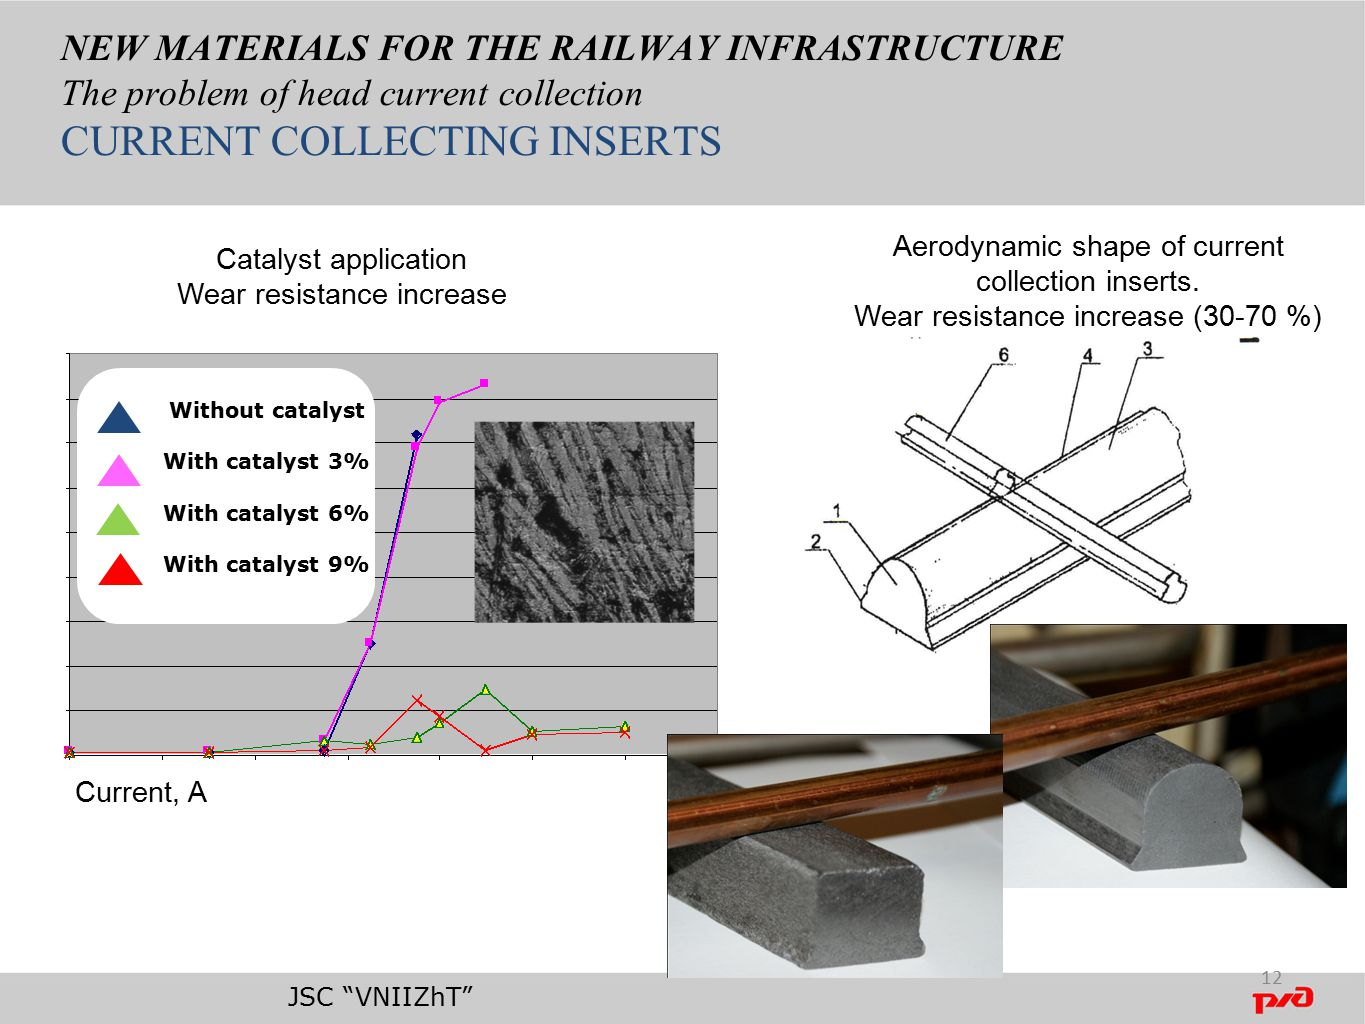 NEW MATERIALS FOR THE RAILWAY INFRASTRUCTURE The problem of head current collection CURRENT COLLECTING INSERTS Catalyst application Wear resistance increase Aerodynamic shape of current collection inserts.